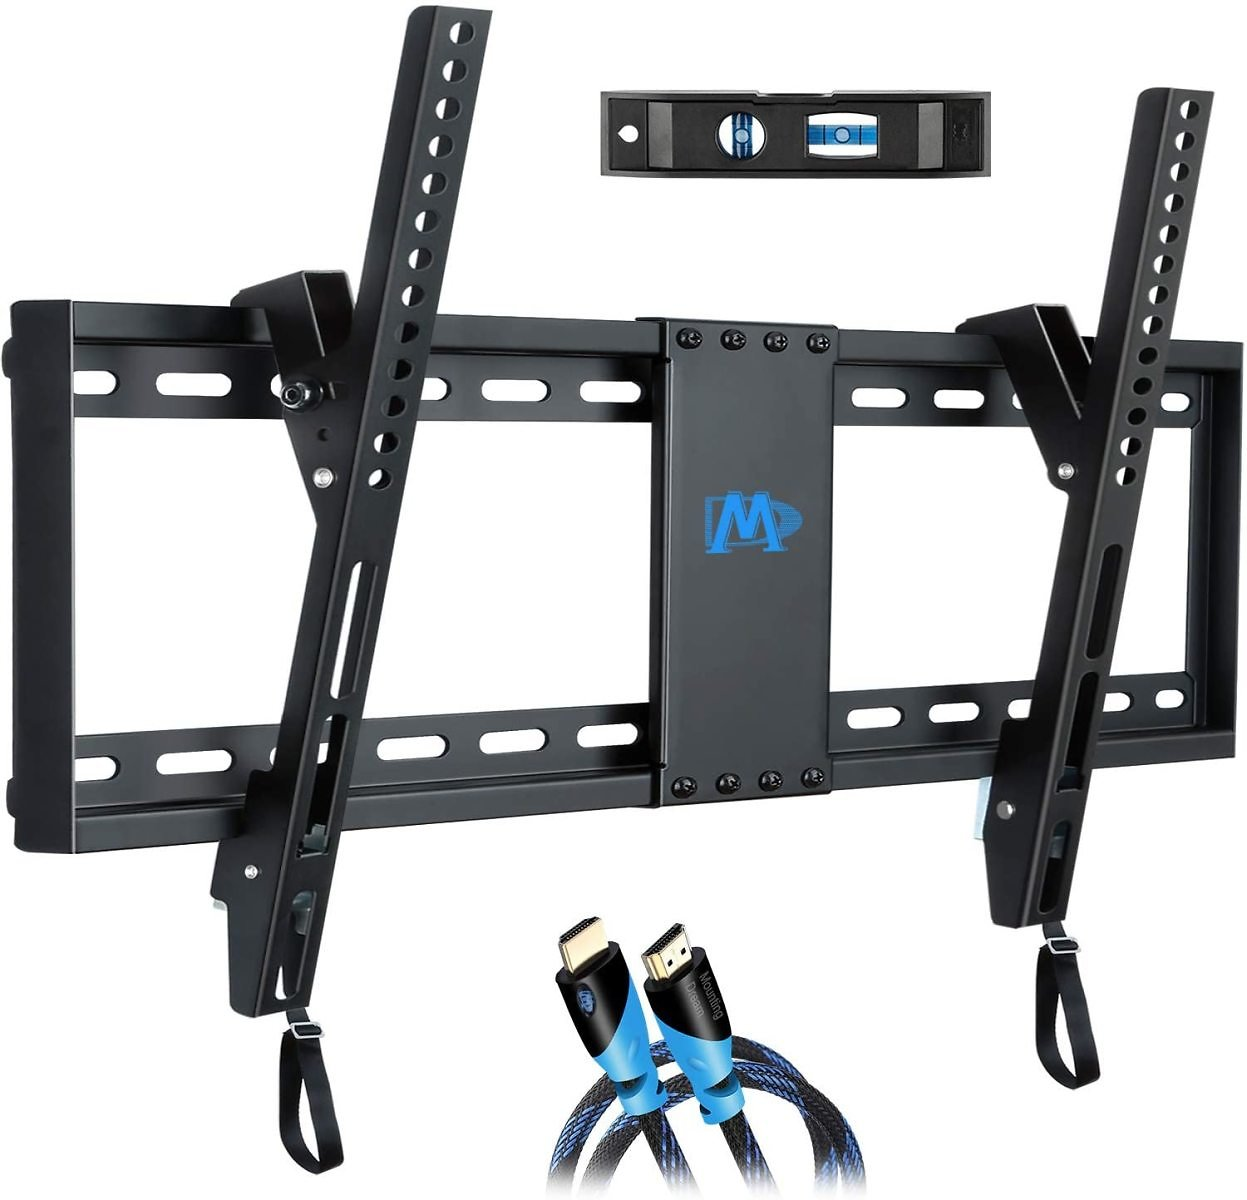 Mounting Dream UL Listed TV Mount for Most 37-70 Inches TVs for $19.07 + Free Shipping